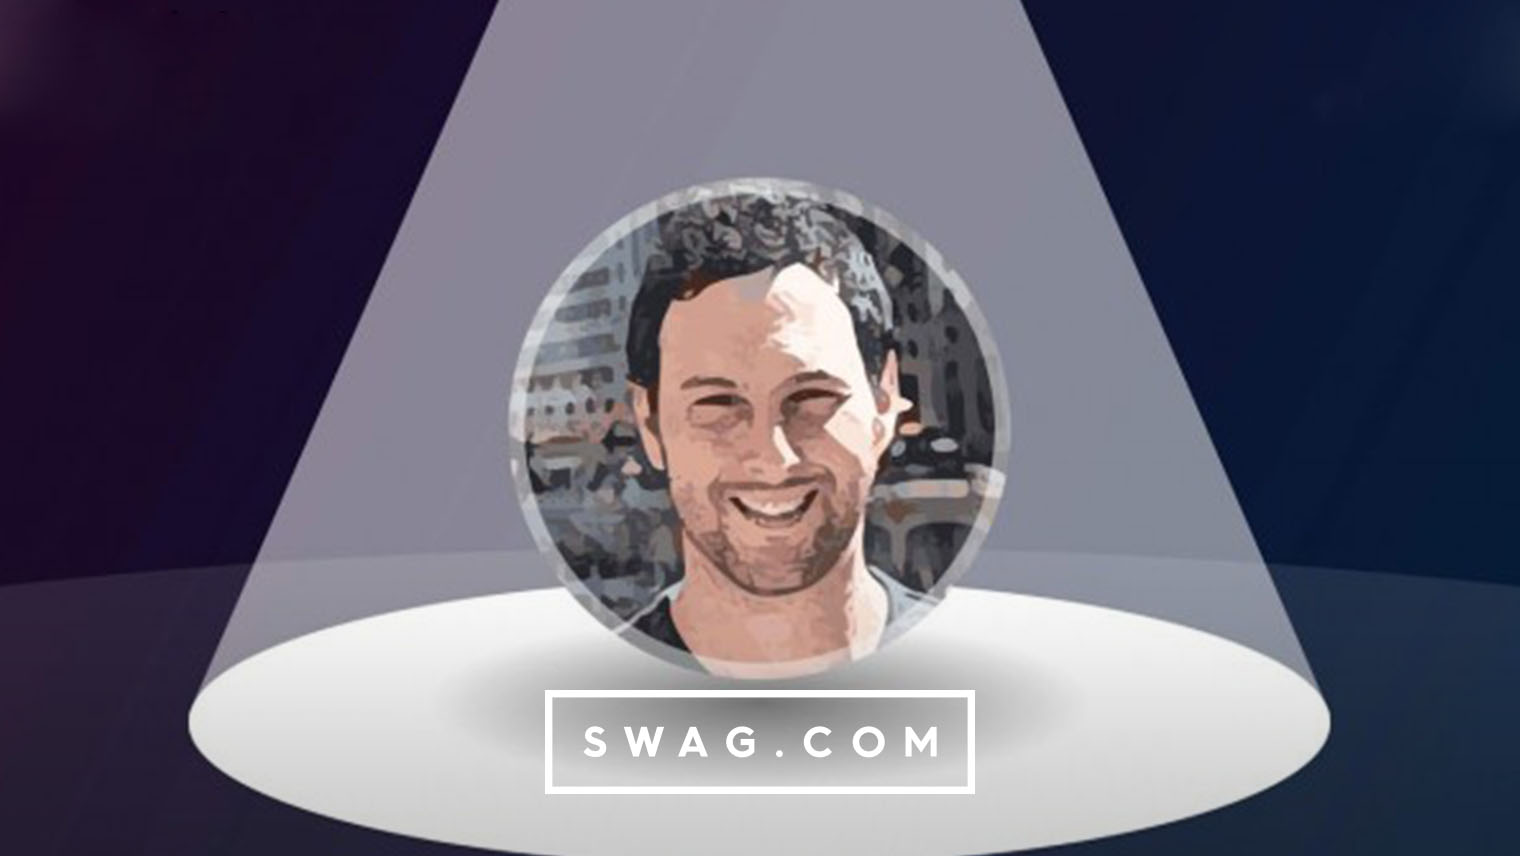 Total Retail Asks Jeremy Parker About Swag & Advice For Entrepreneurs